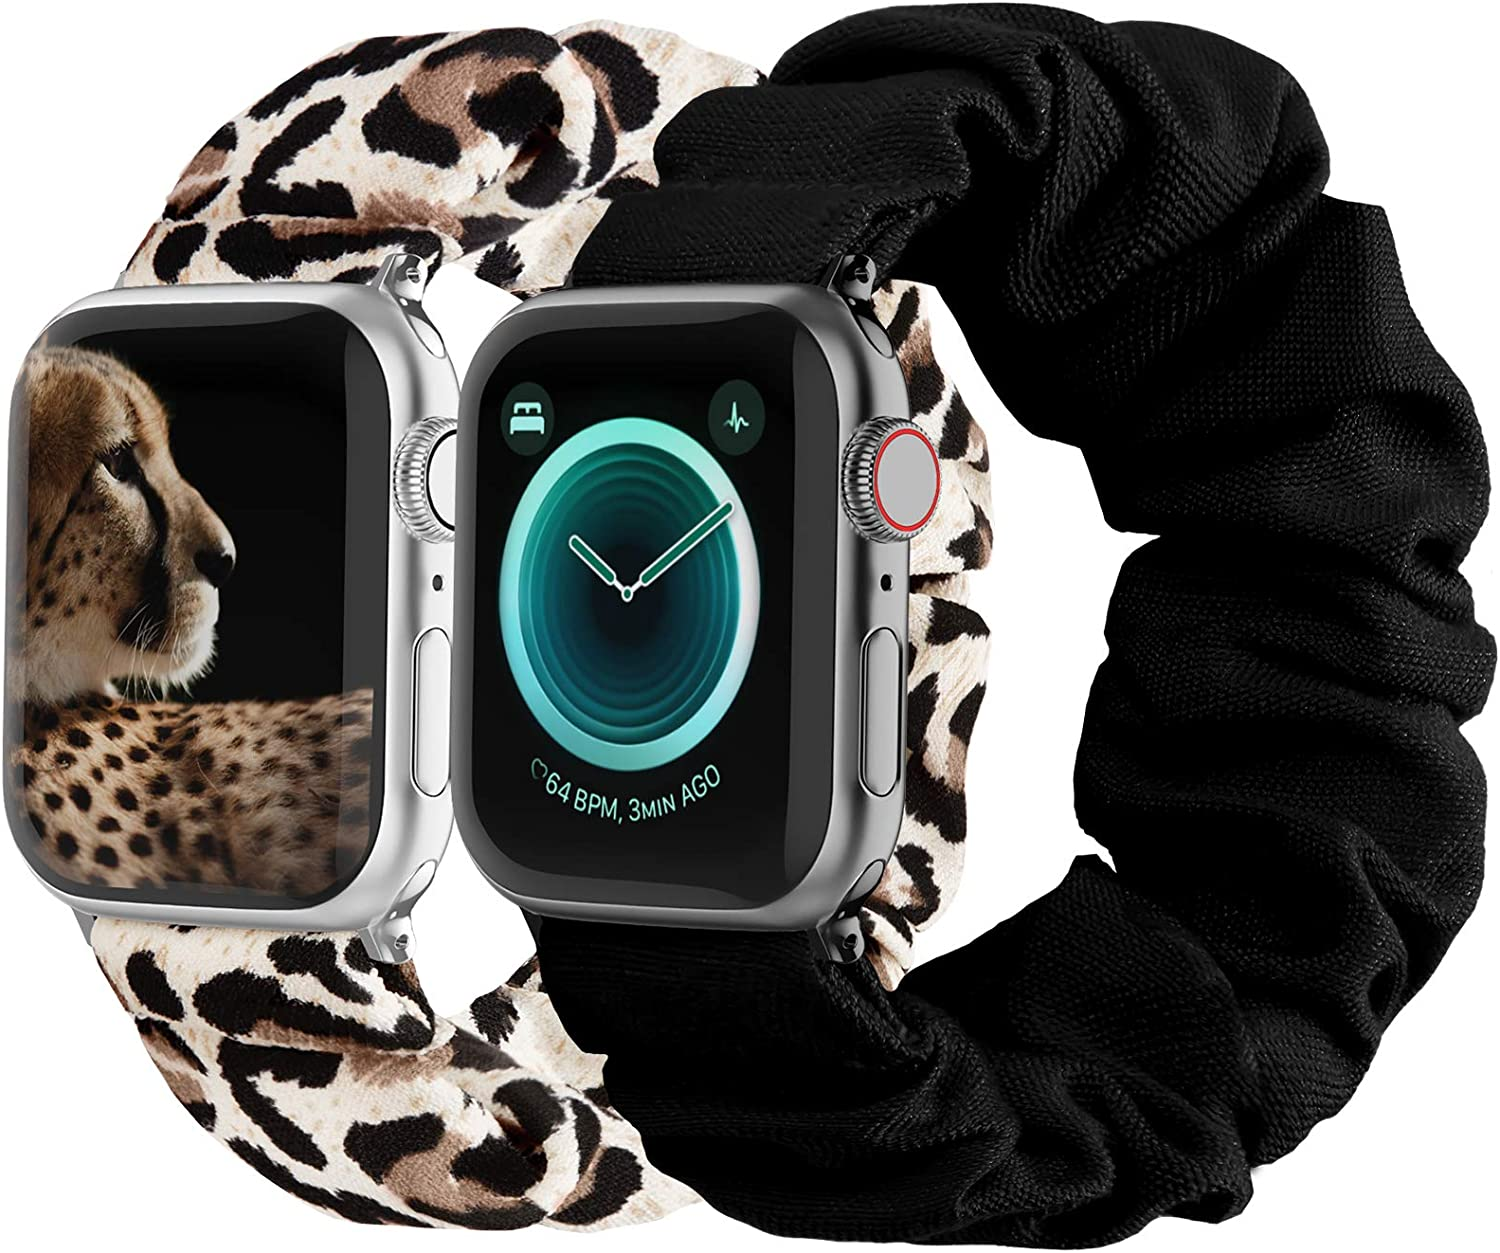 Compatible with Scrunchies Apple Watch Bands 38mm 40mm, Women Cloth Pattern Printed Fabric Wristbands Straps Elastic Scrunchy Band for iWatch Series 6 5 4 3 2 1 SE (Small Black, Leopard)